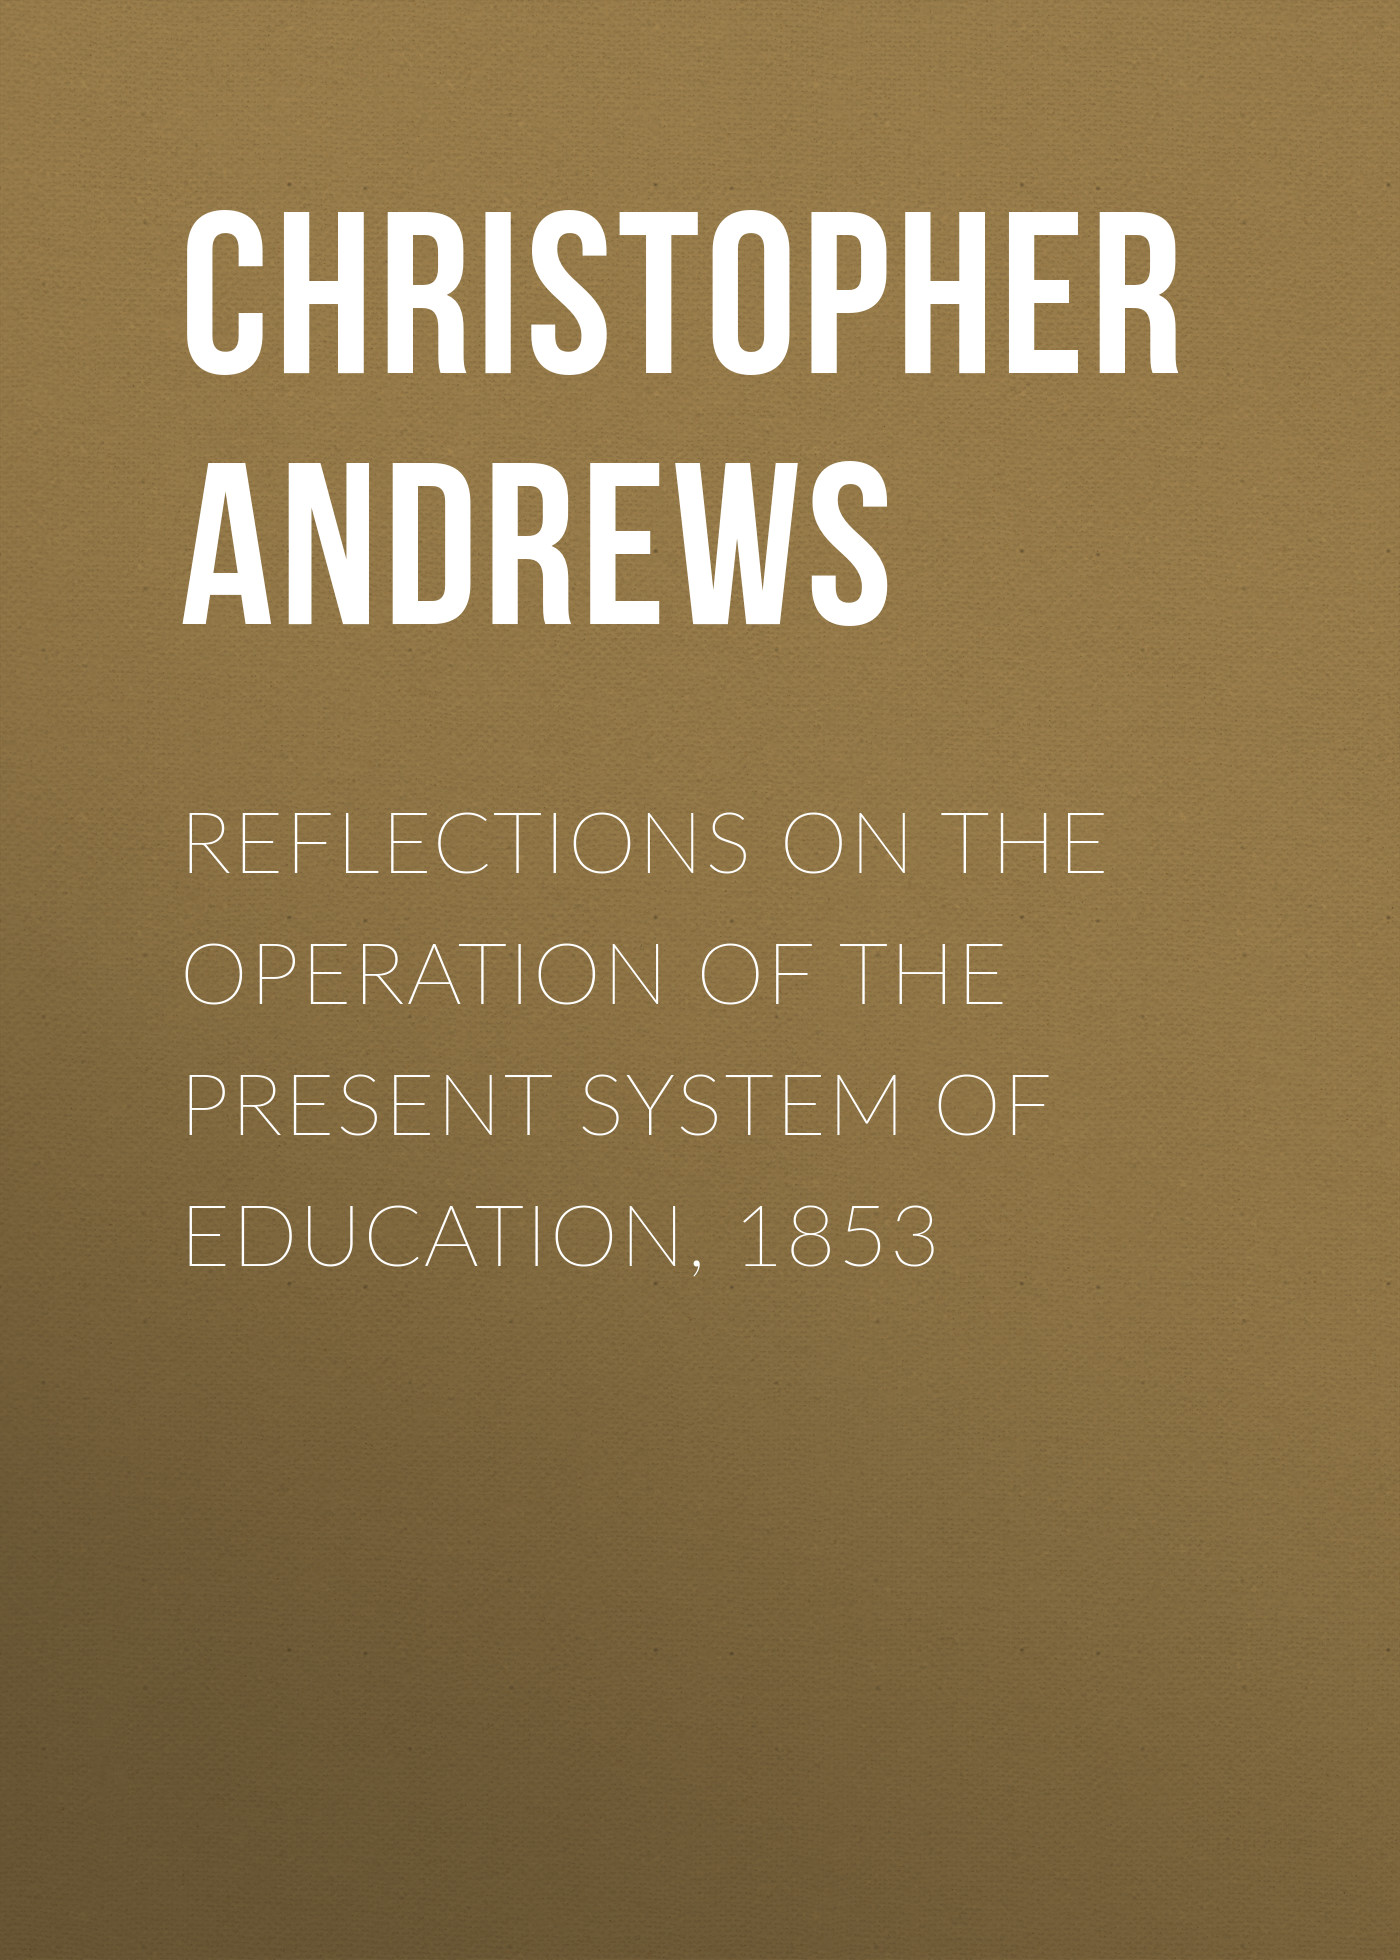 лучшая цена Andrews Christopher Columbus Reflections on the Operation of the Present System of Education, 1853